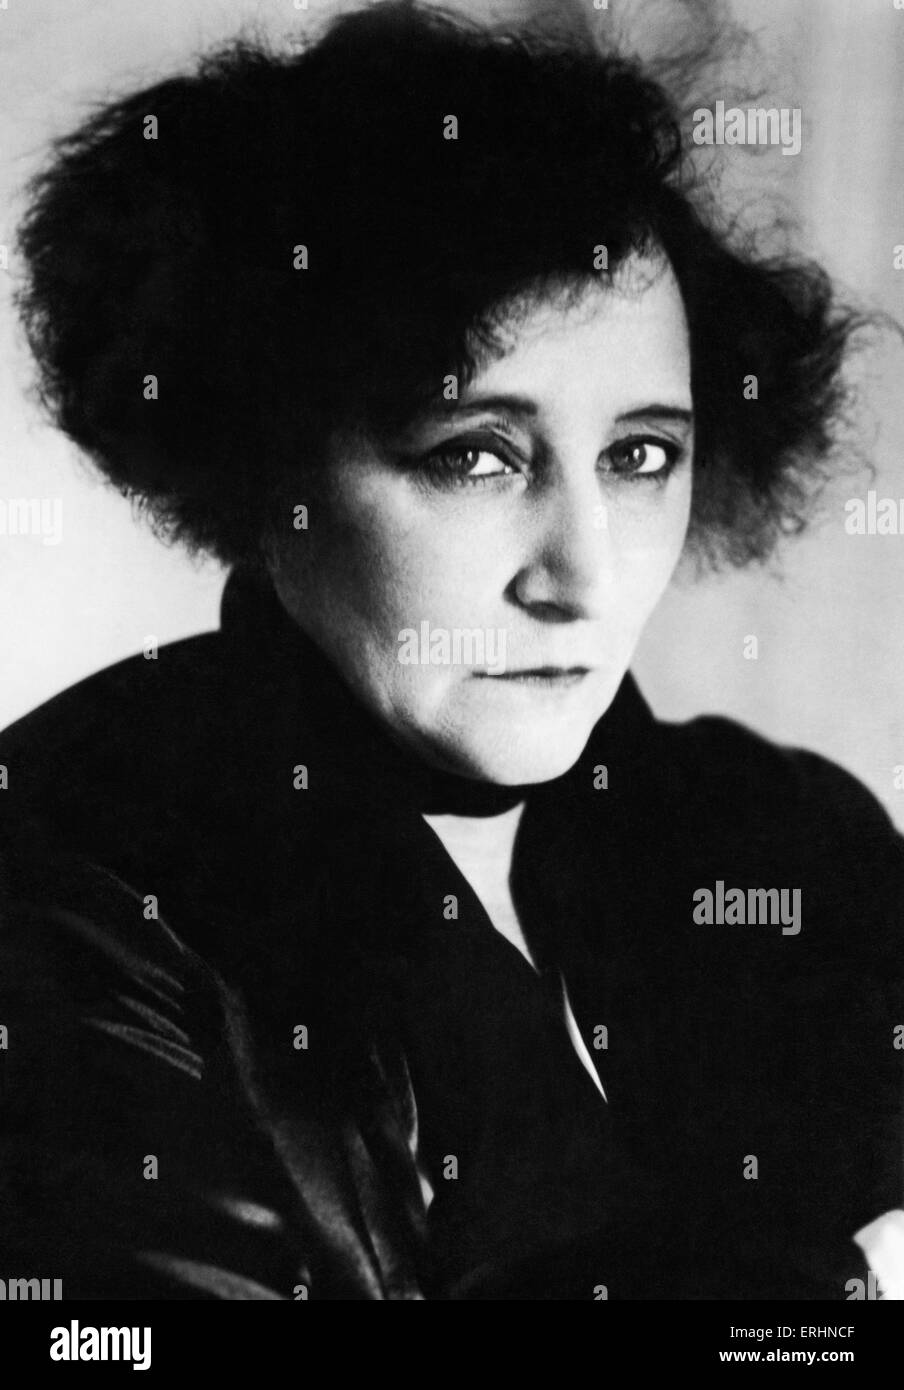 COLETTE, Sidonie Gabrielle   - French literary figure of first half of 20th century.  Wrote the libretto for Ravel's - Stock Image